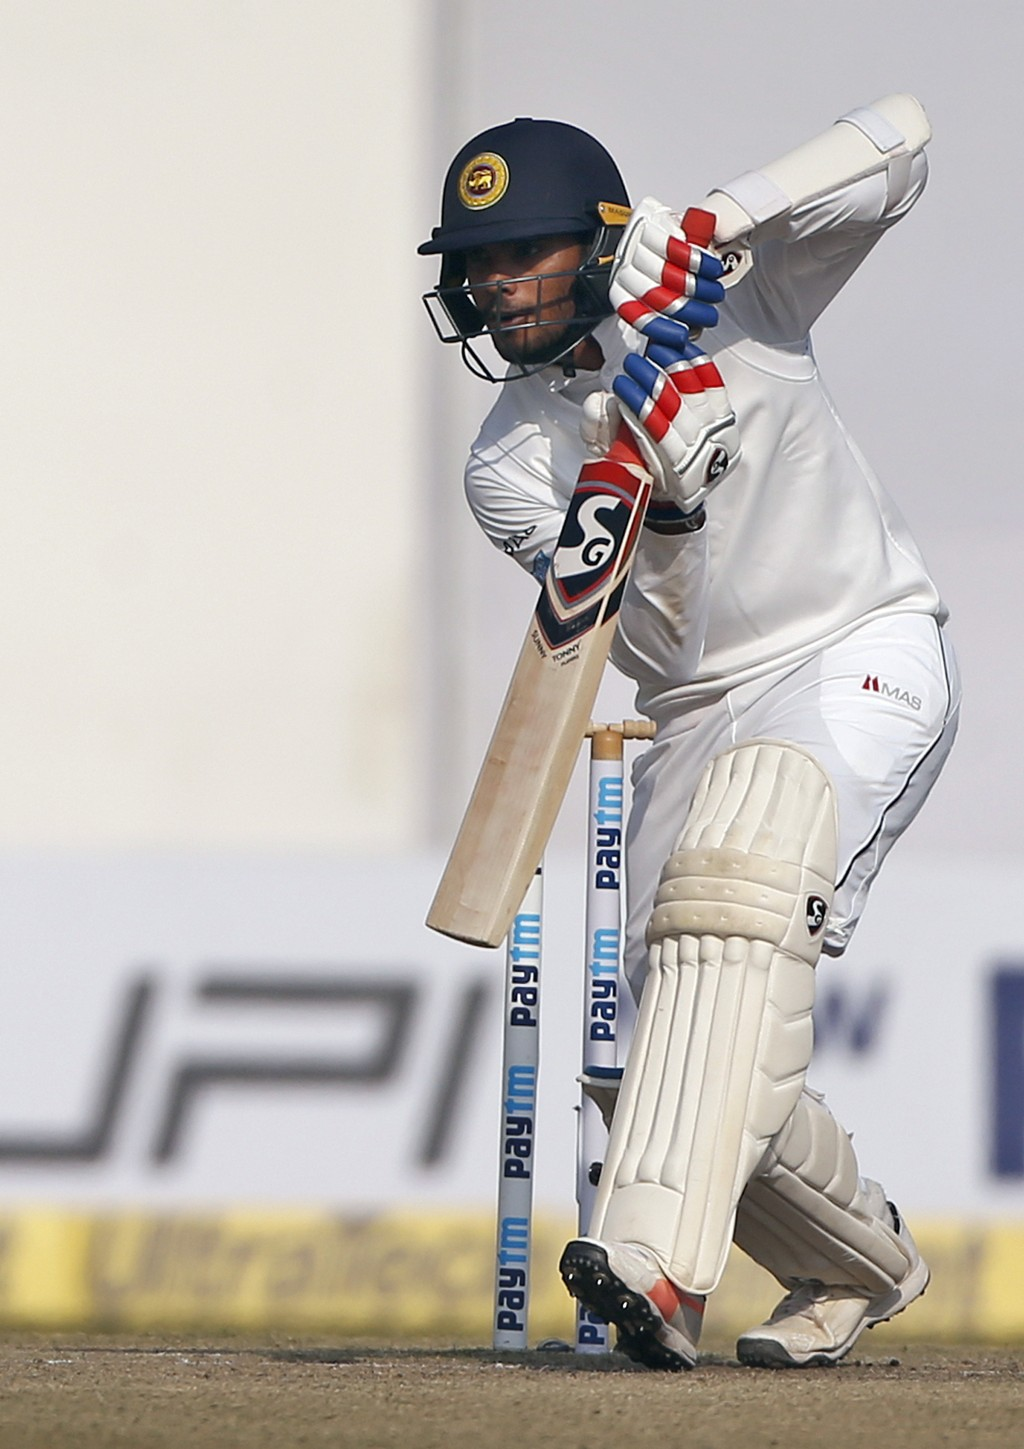 Sri Lanka's Dhananjaya De Silva bats during the fifth day of their third test cricket match against India in New Delhi, India, Wednesday, Dec. 6, 2017